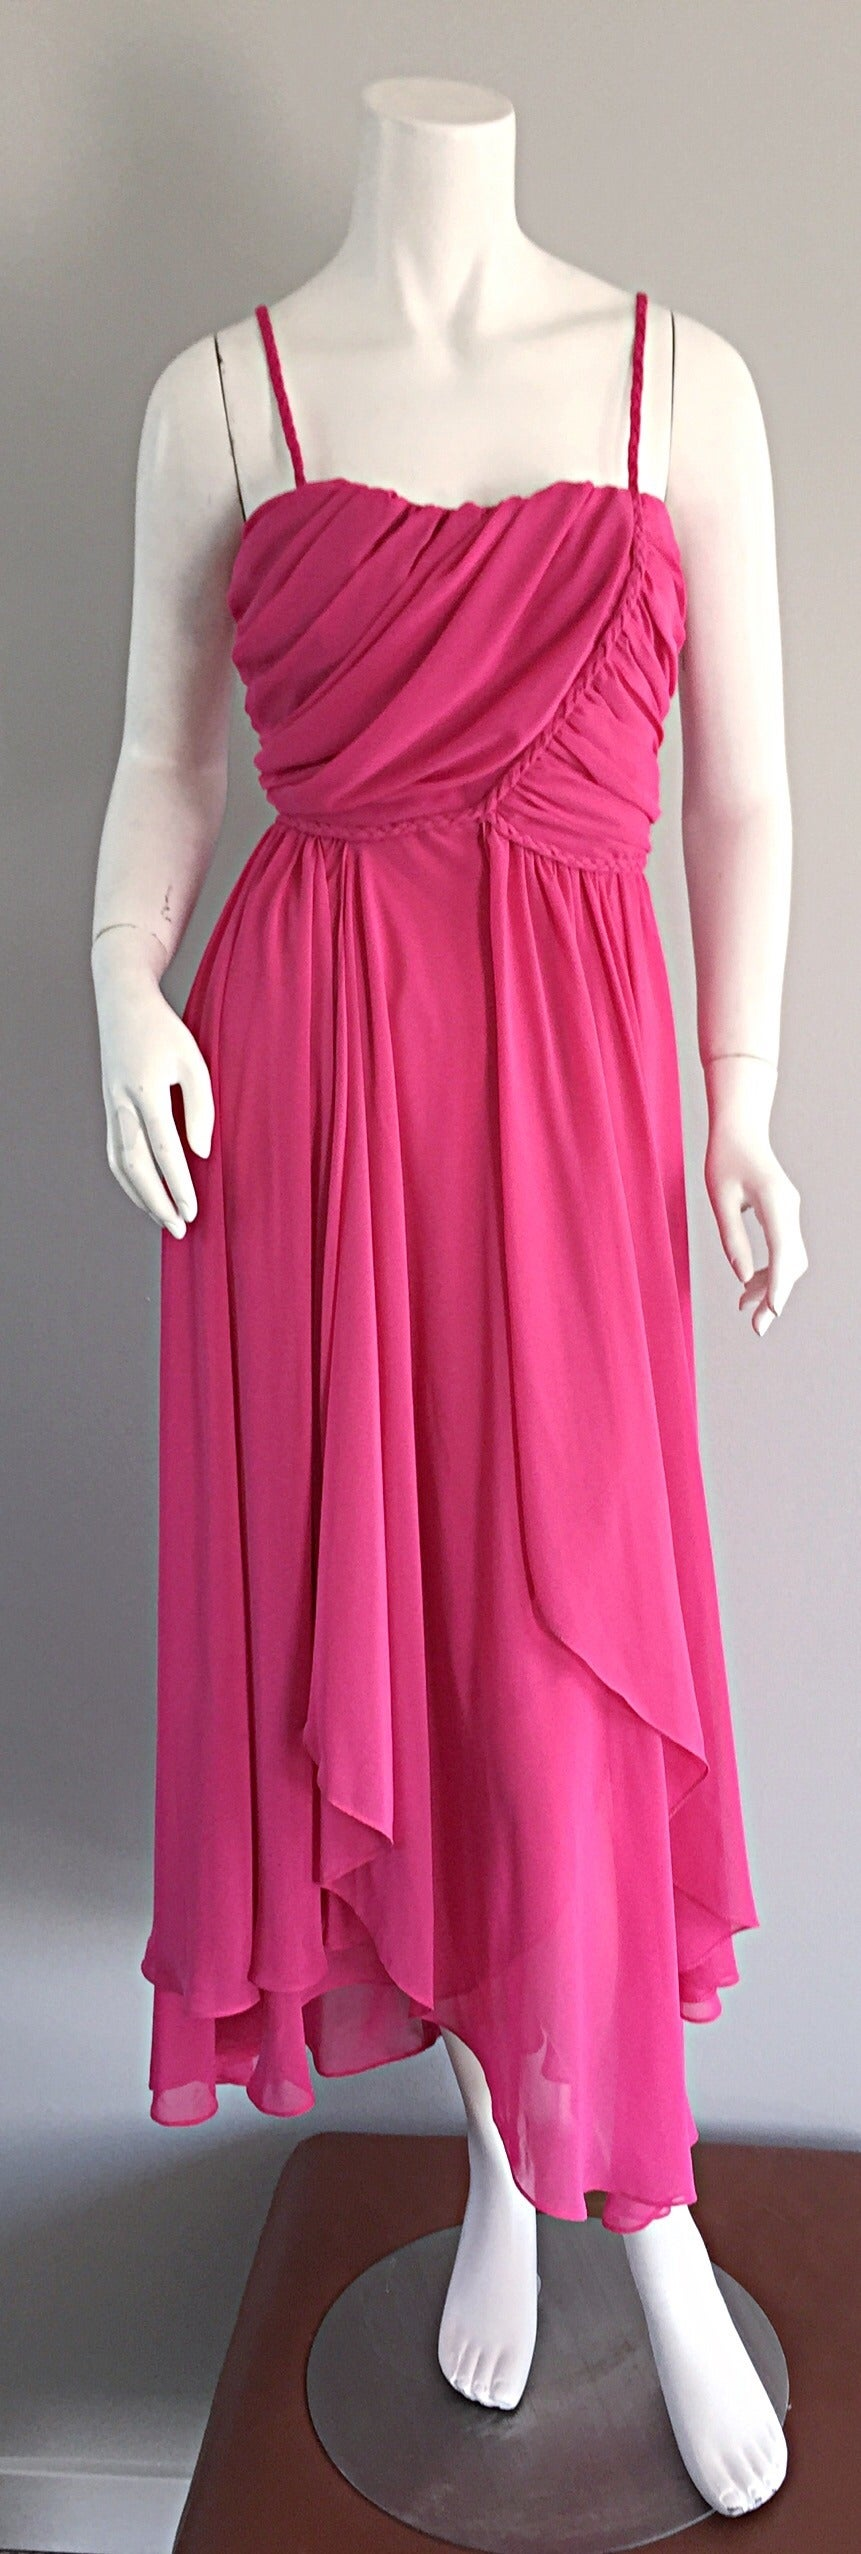 1970s Joy Stevens Hot Pink Vintage Flowy Grecian Disco Dress w/ Braided Details 2